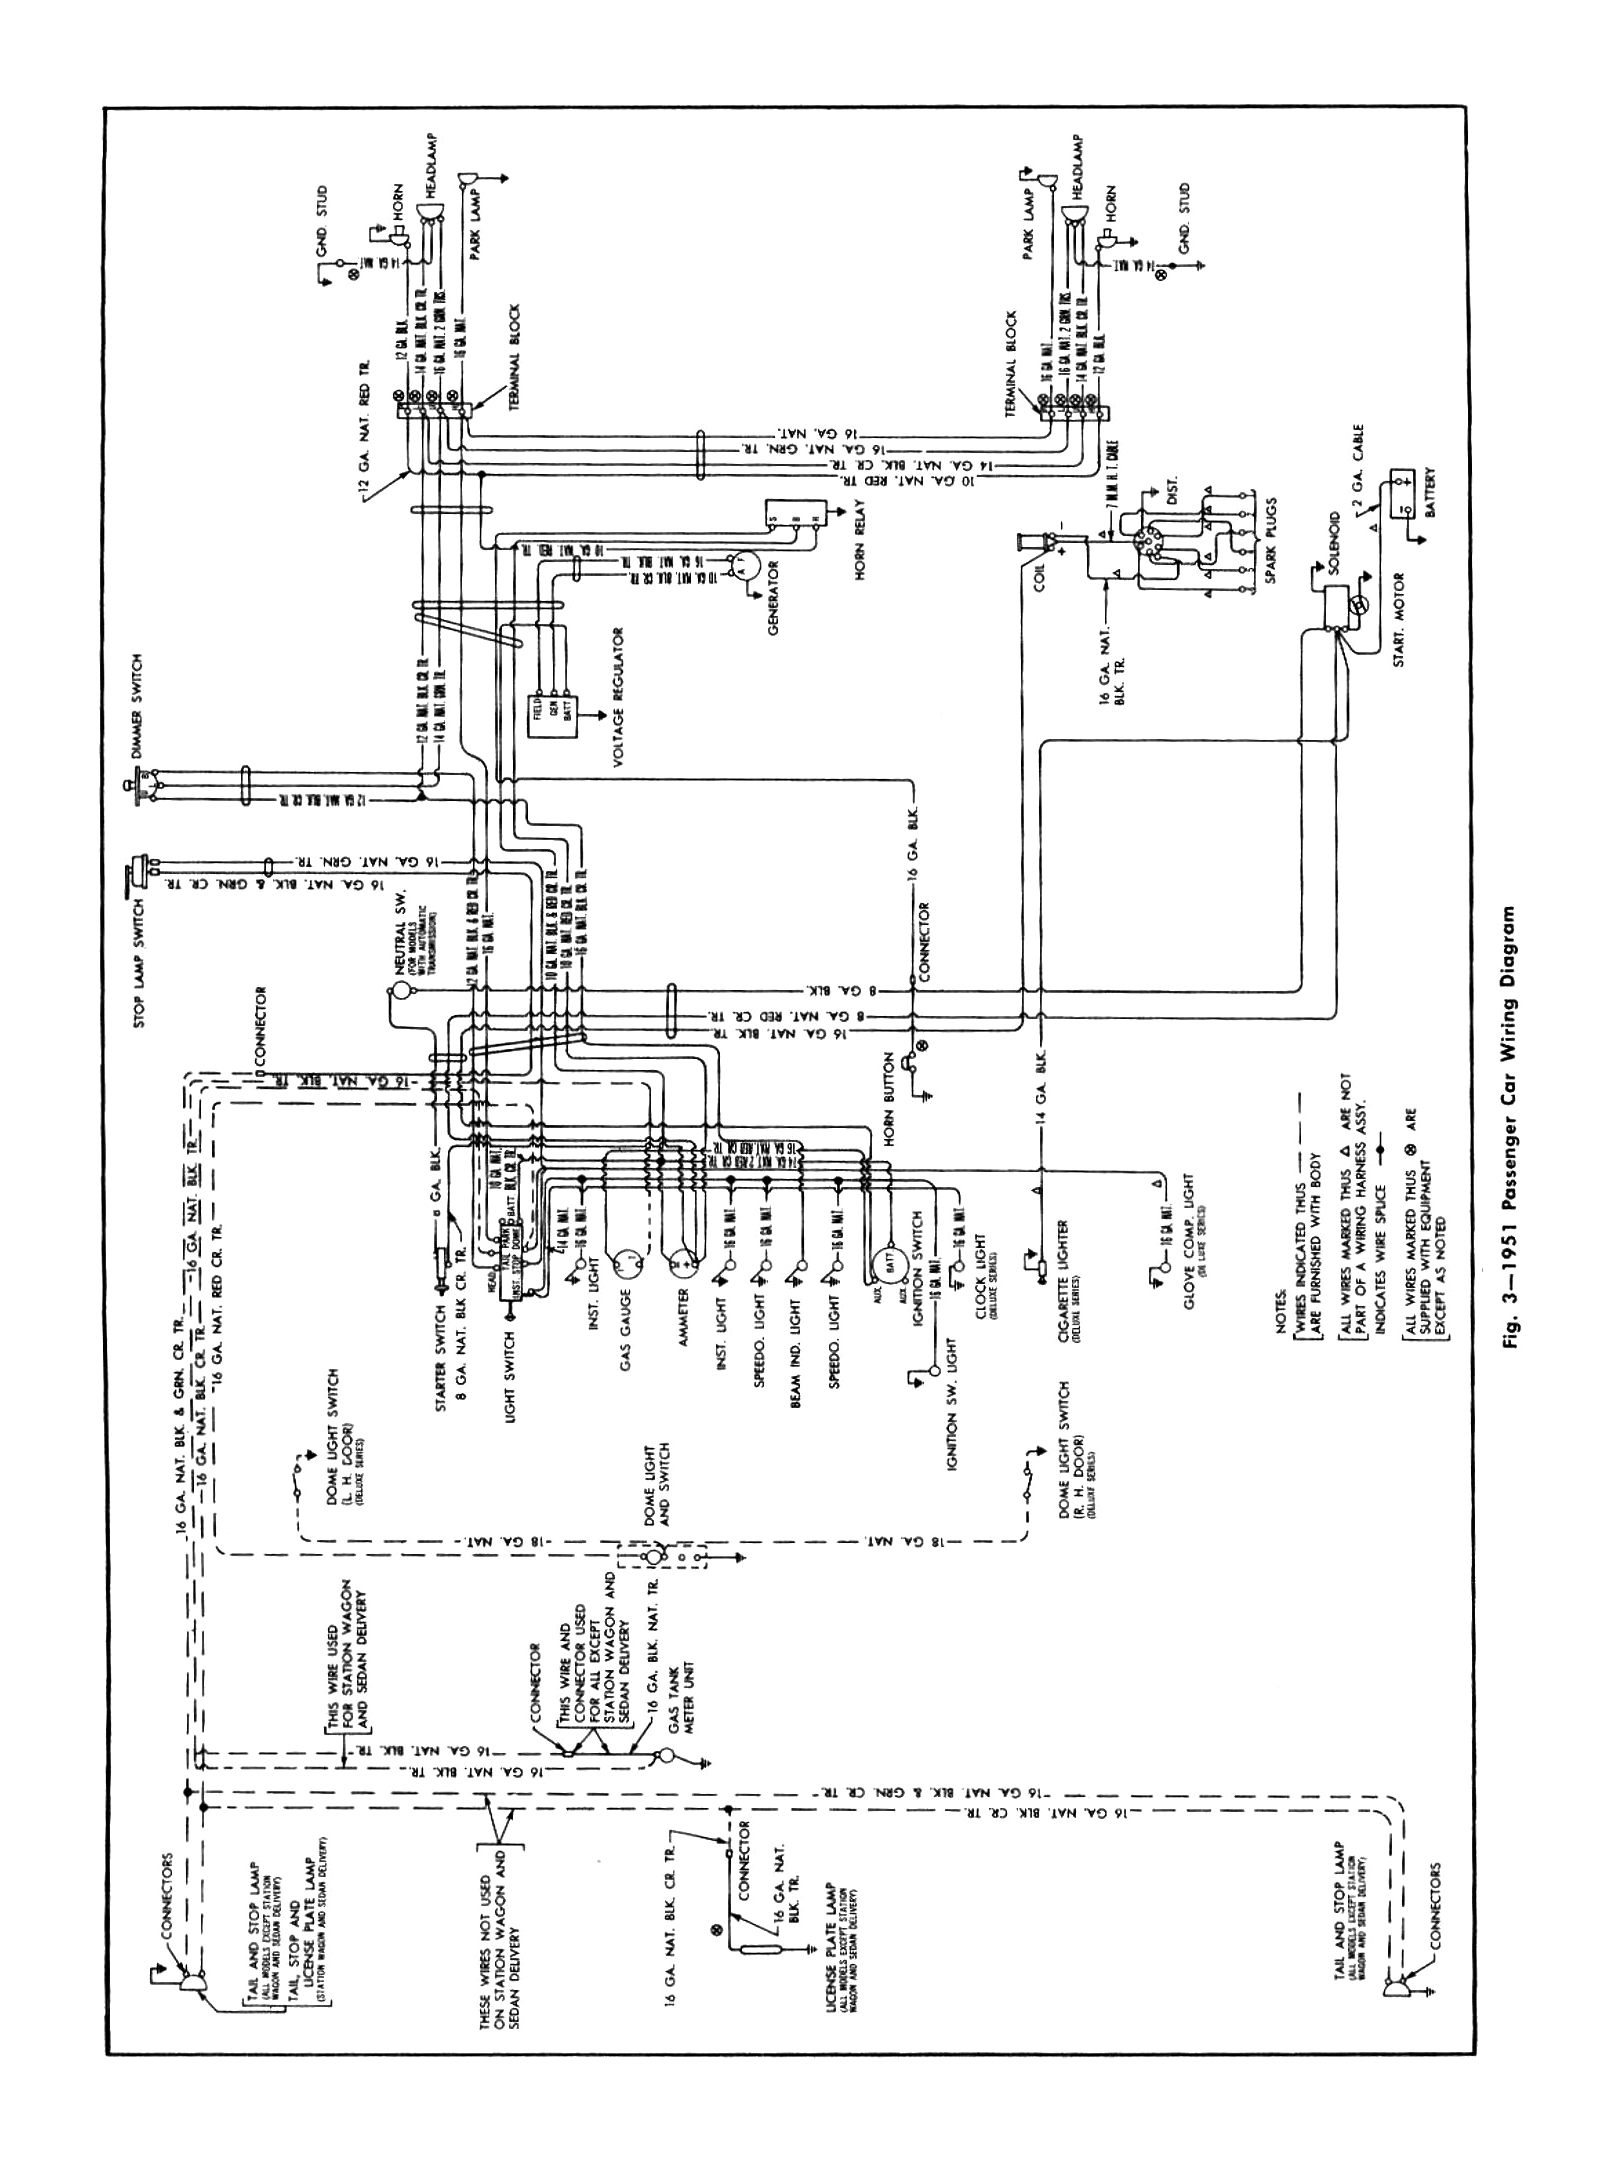 51car wiring loom diagram 1 2wire loom \u2022 wiring diagrams j squared co ez wiring mini 20 wiring diagram download at webbmarketing.co